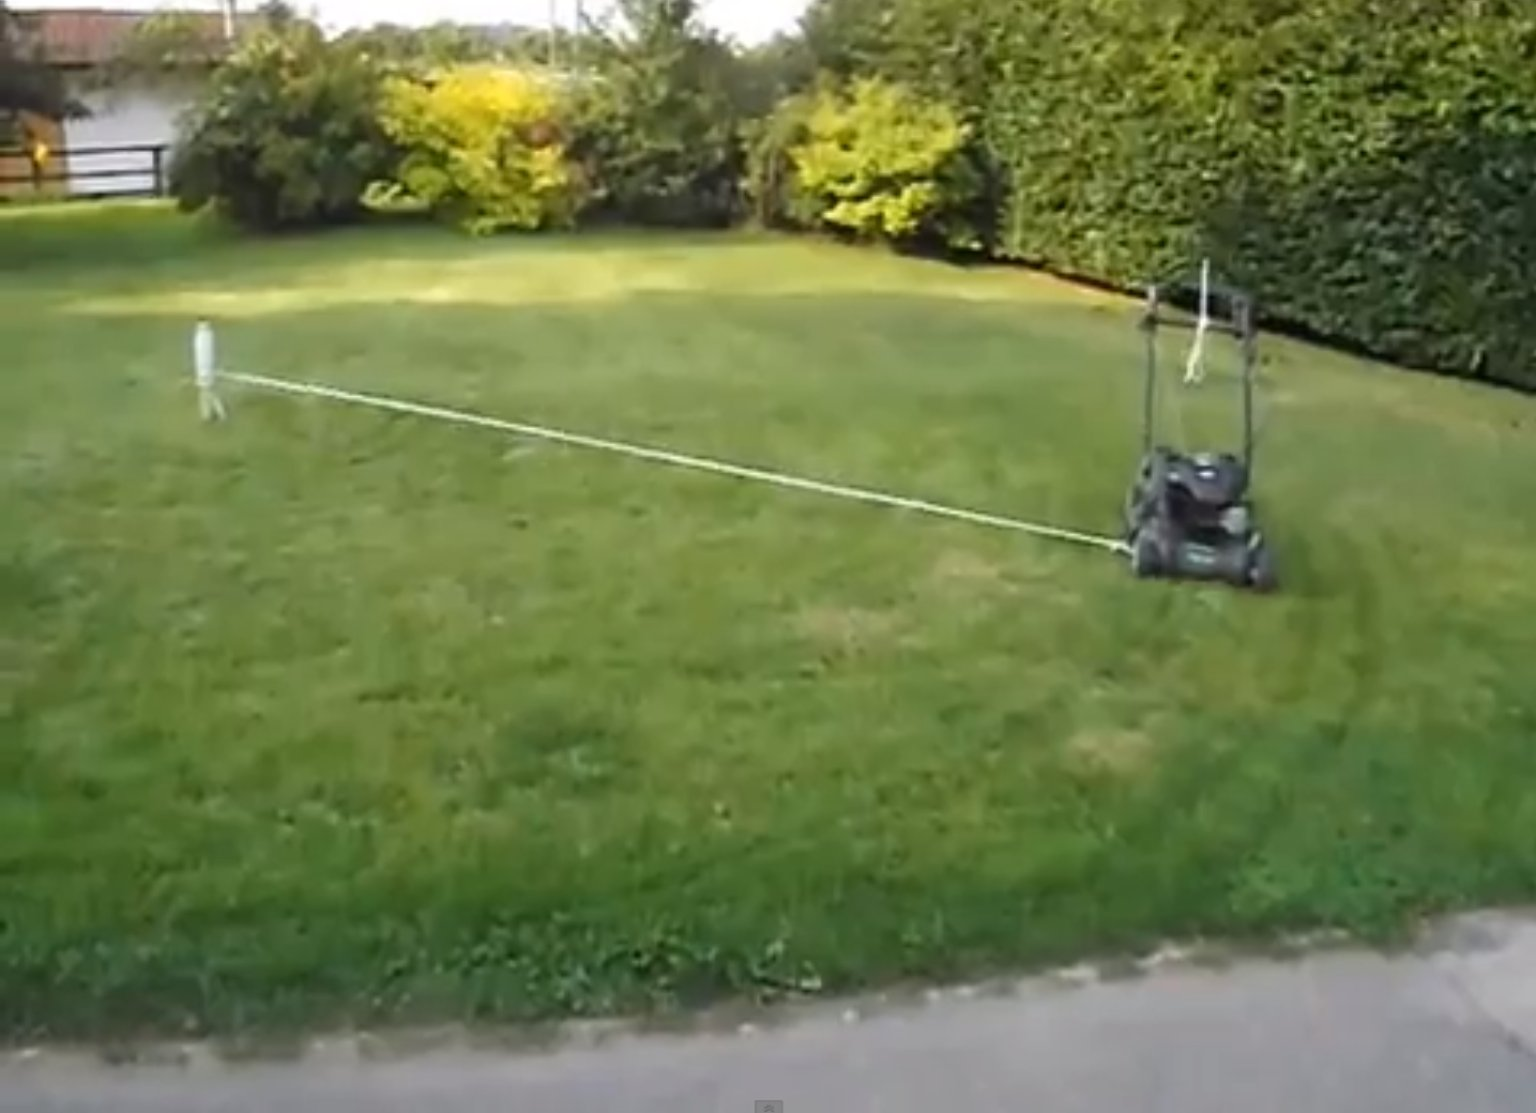 How To Make Mowing Your Lawn At Least 50% Easier (VIDEO)